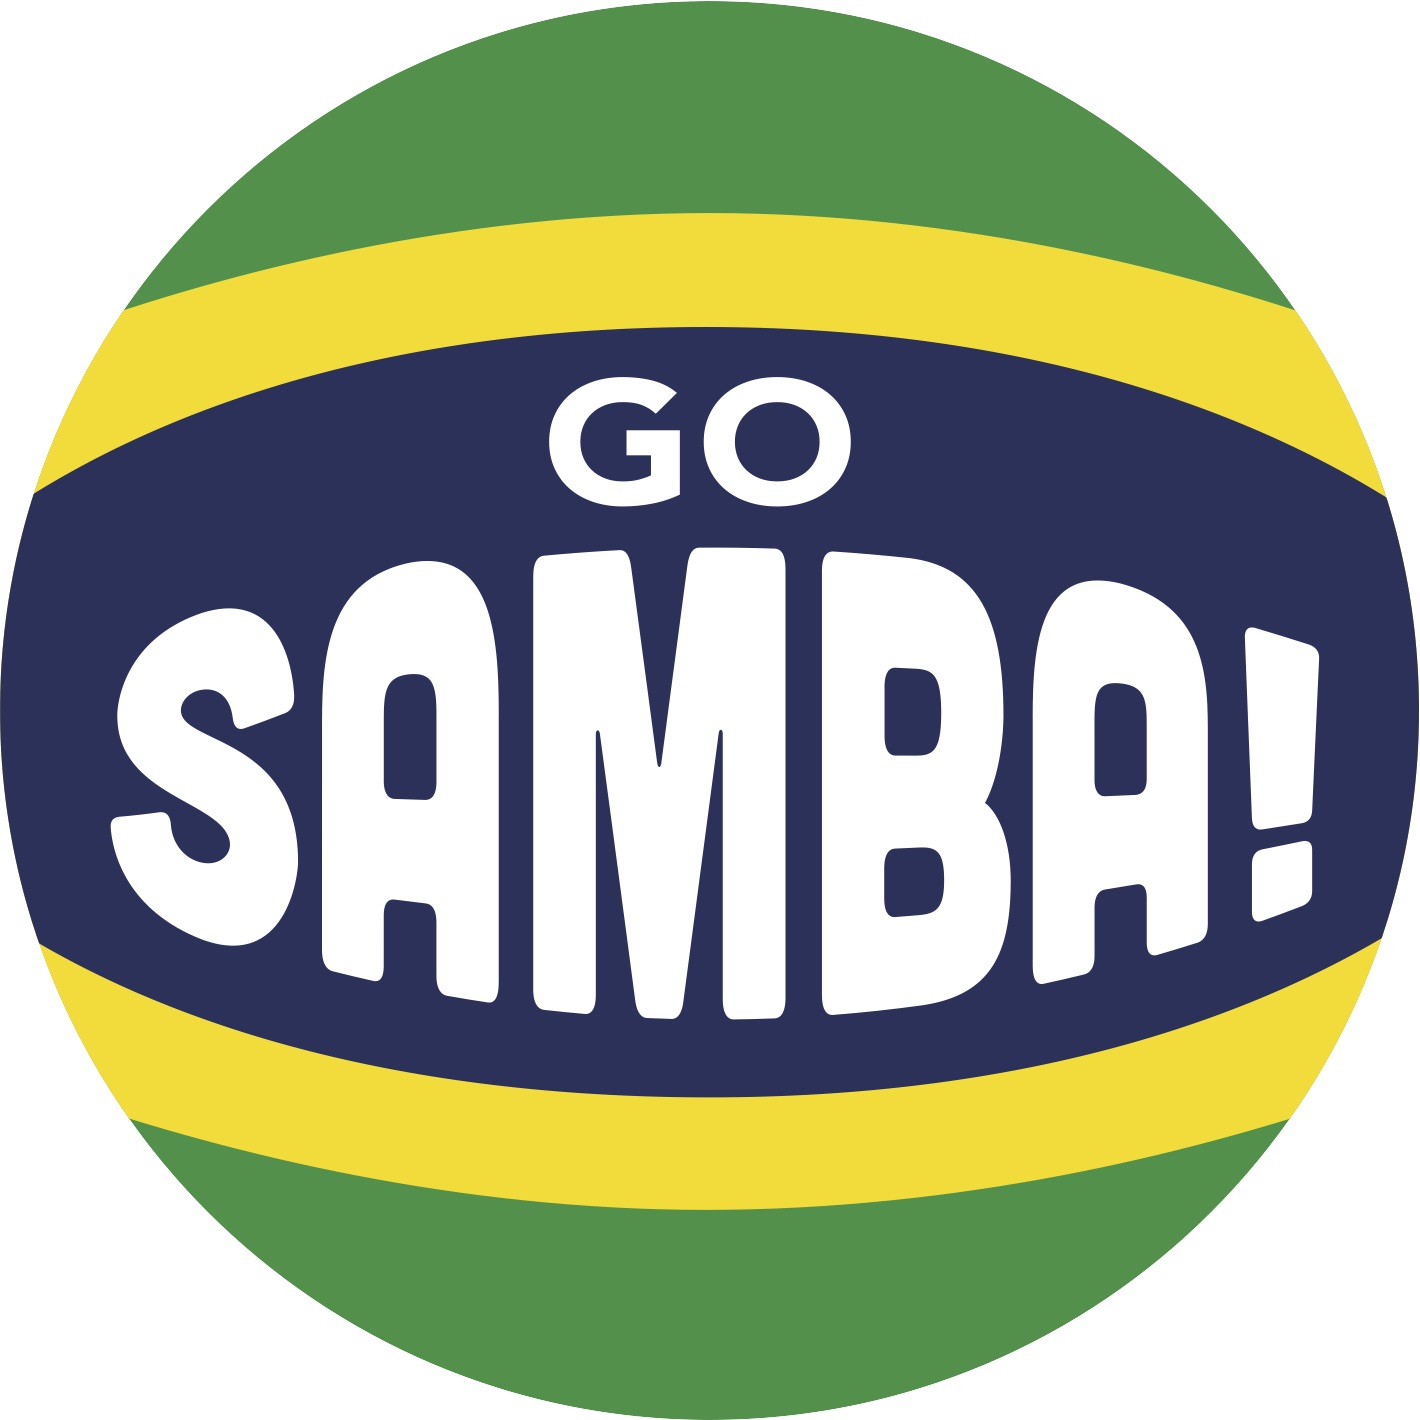 This episode sponsored by gosamba.net - Caixas, surdos, straps, repiniques for sale in the USA!